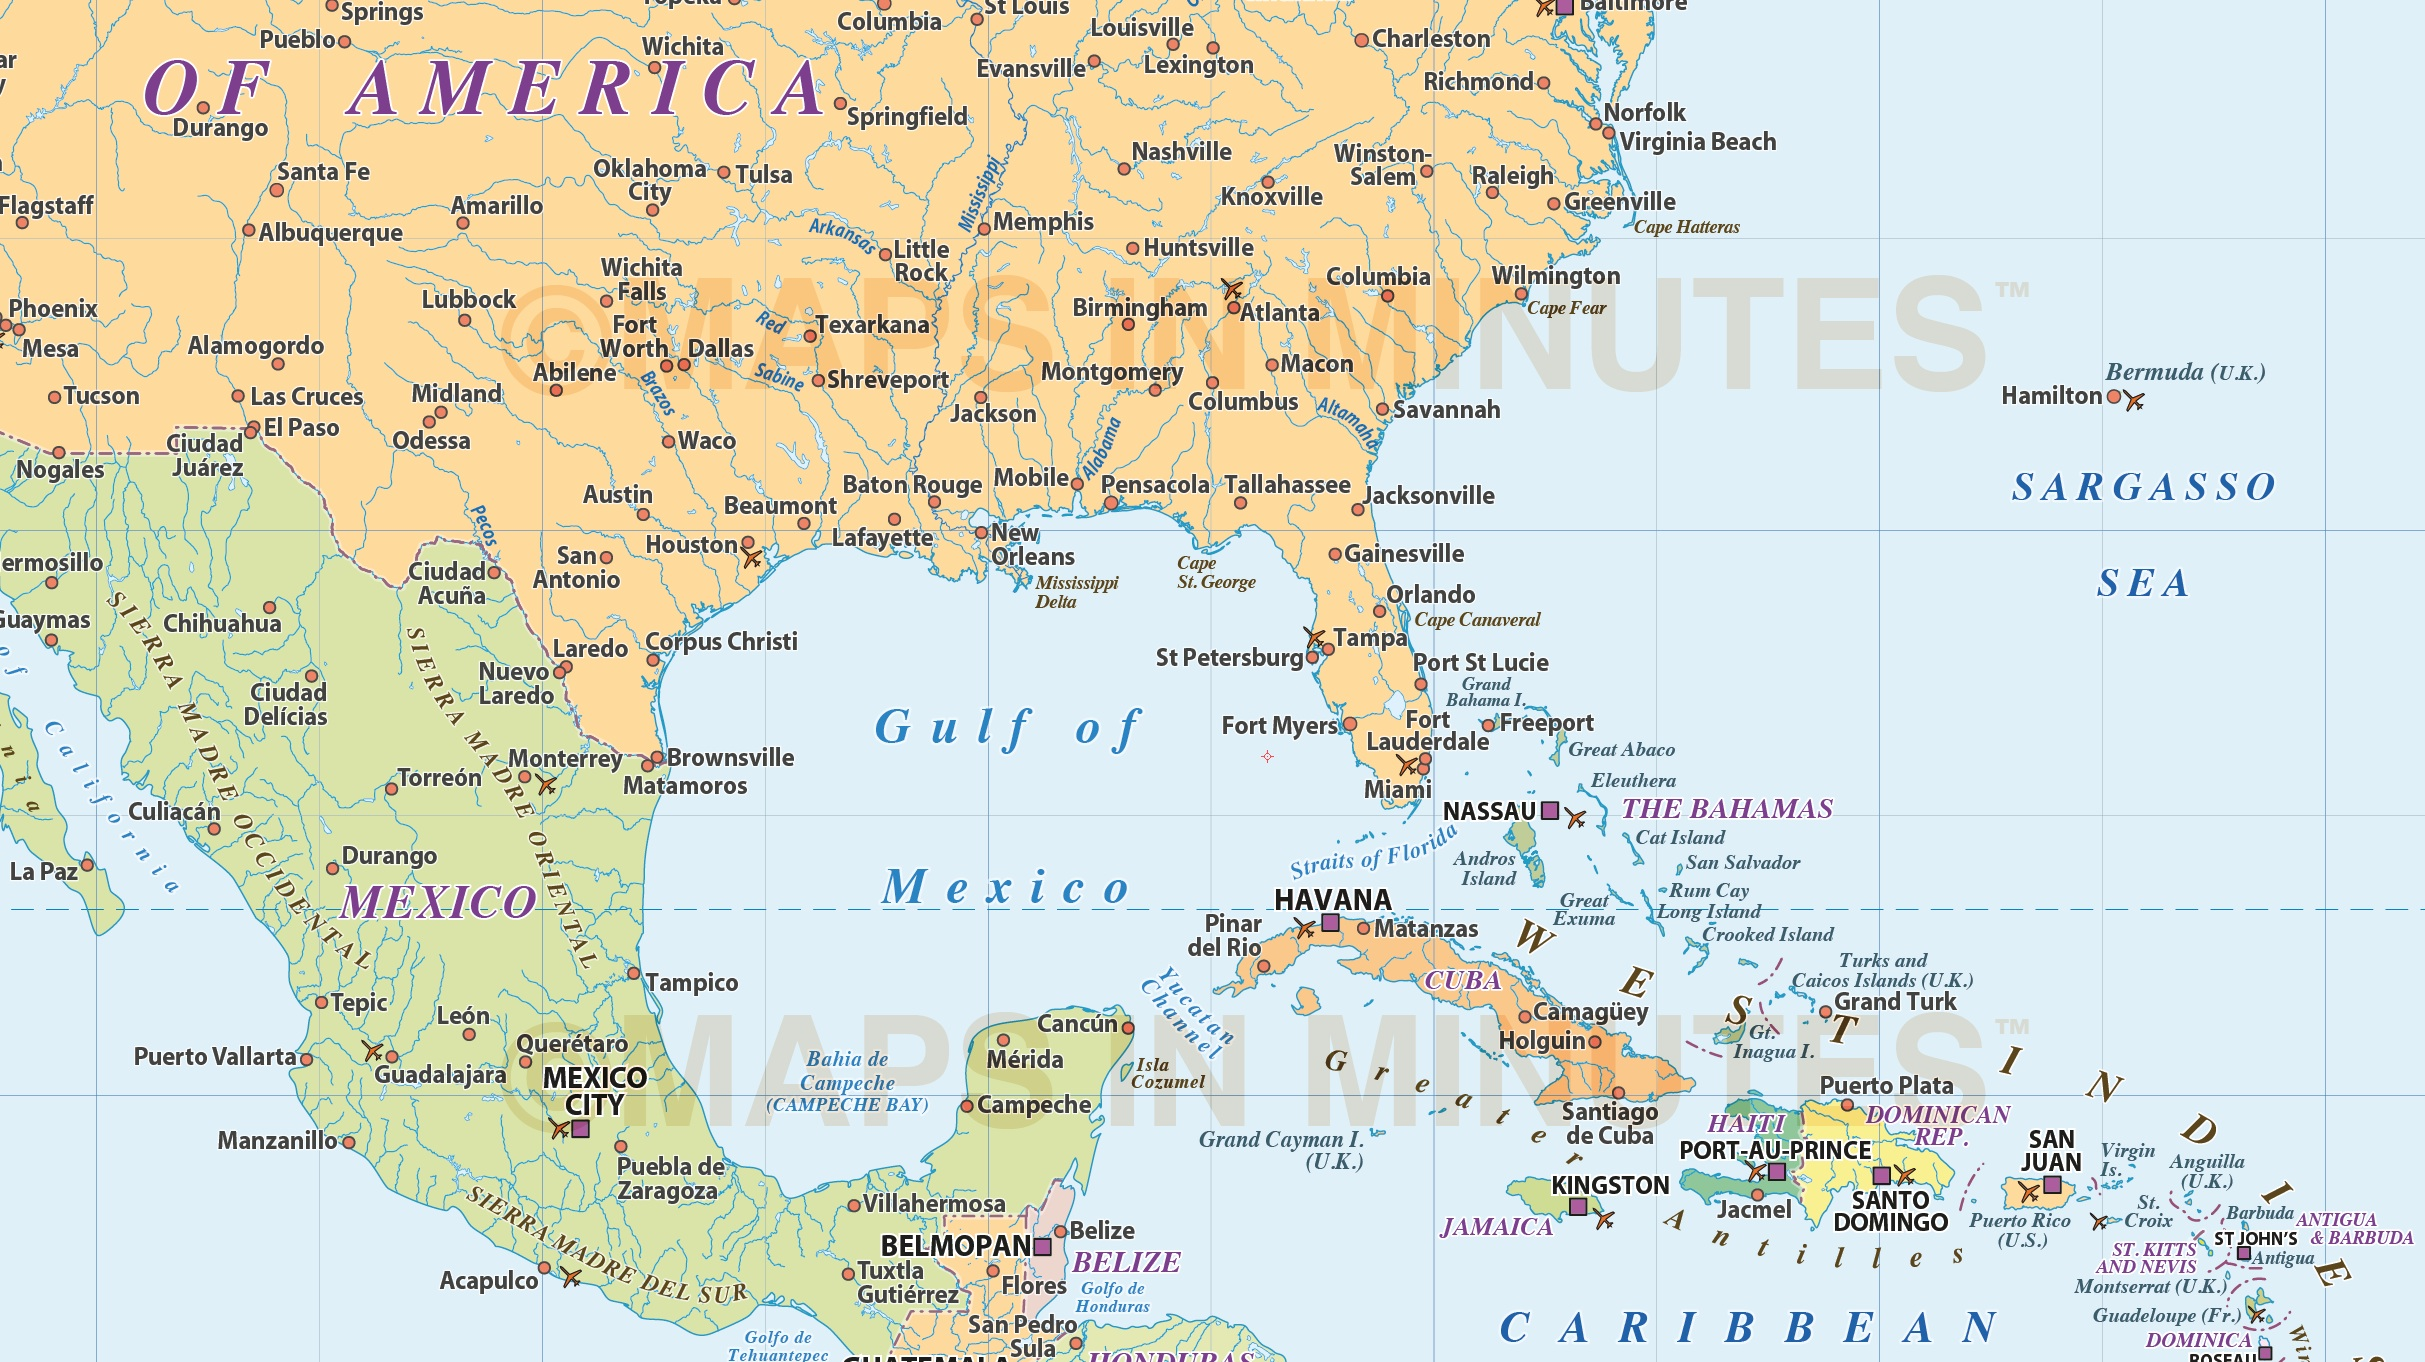 North america region simple country map 10000000 scale in north central america region simple country map in illustrator formats sciox Gallery